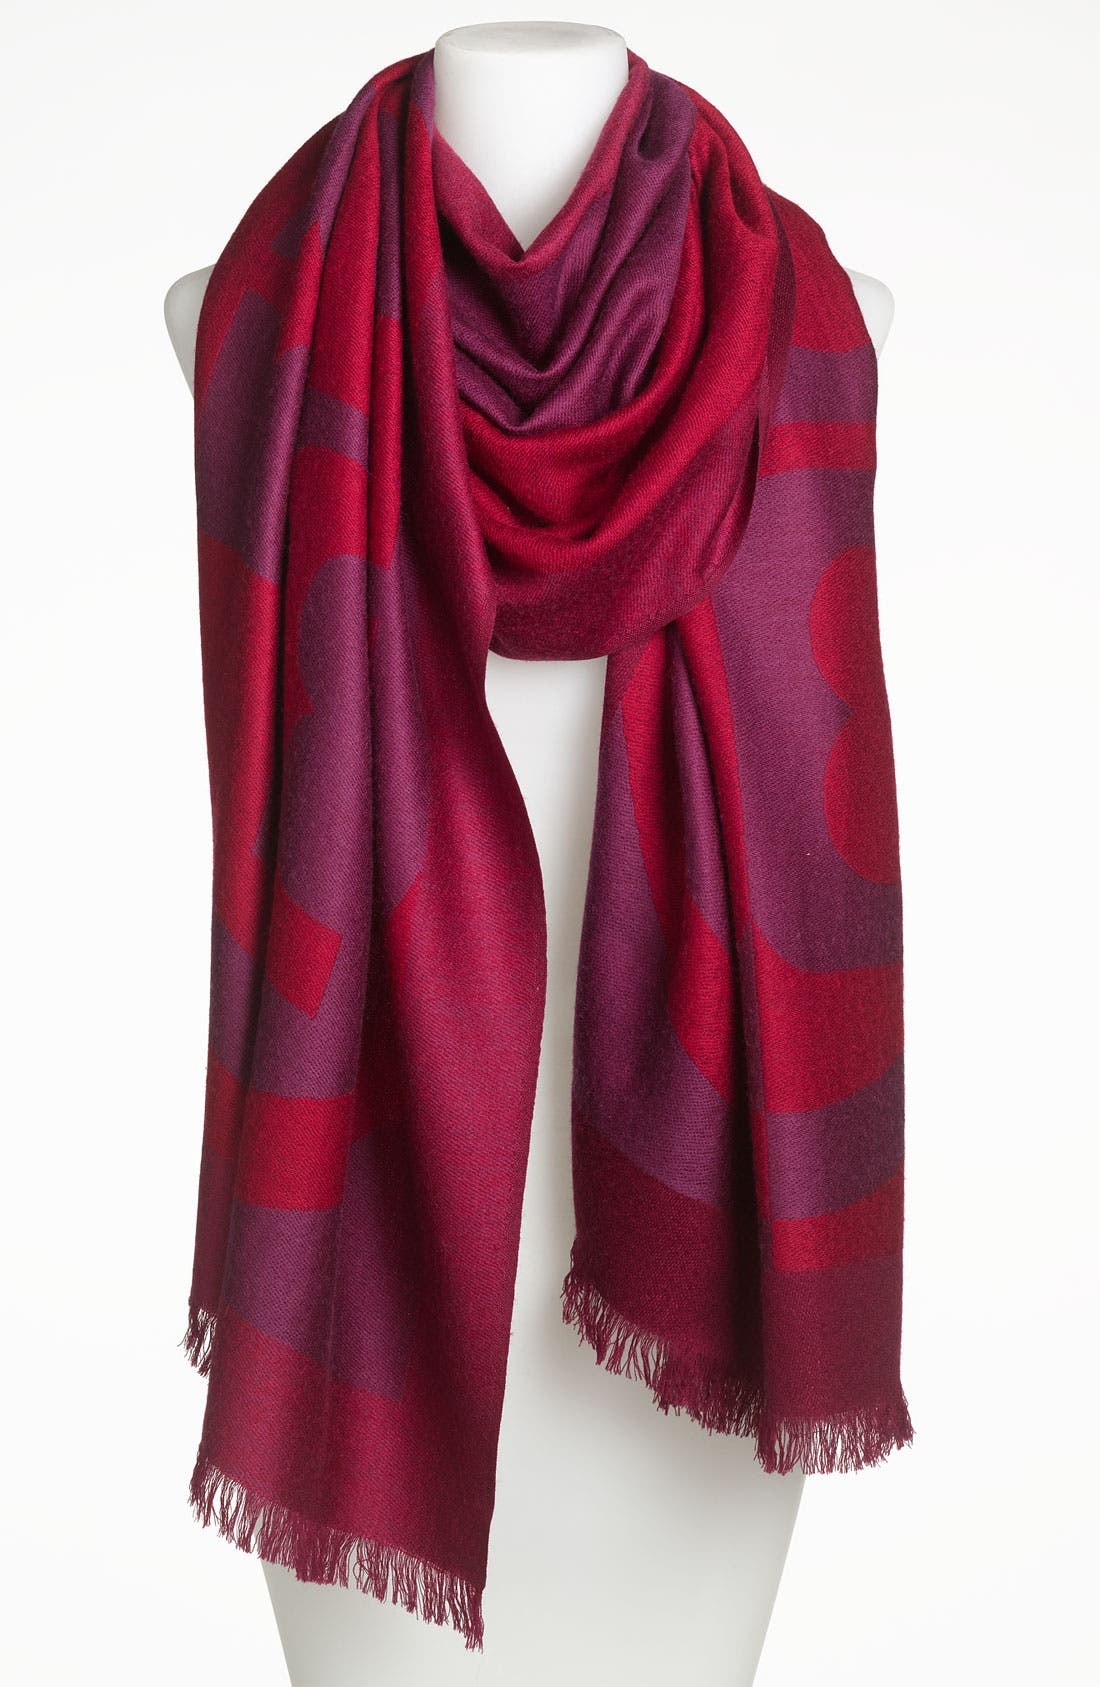 Alternate Image 1 Selected - Tory Burch 'Reva' Jacquard Scarf